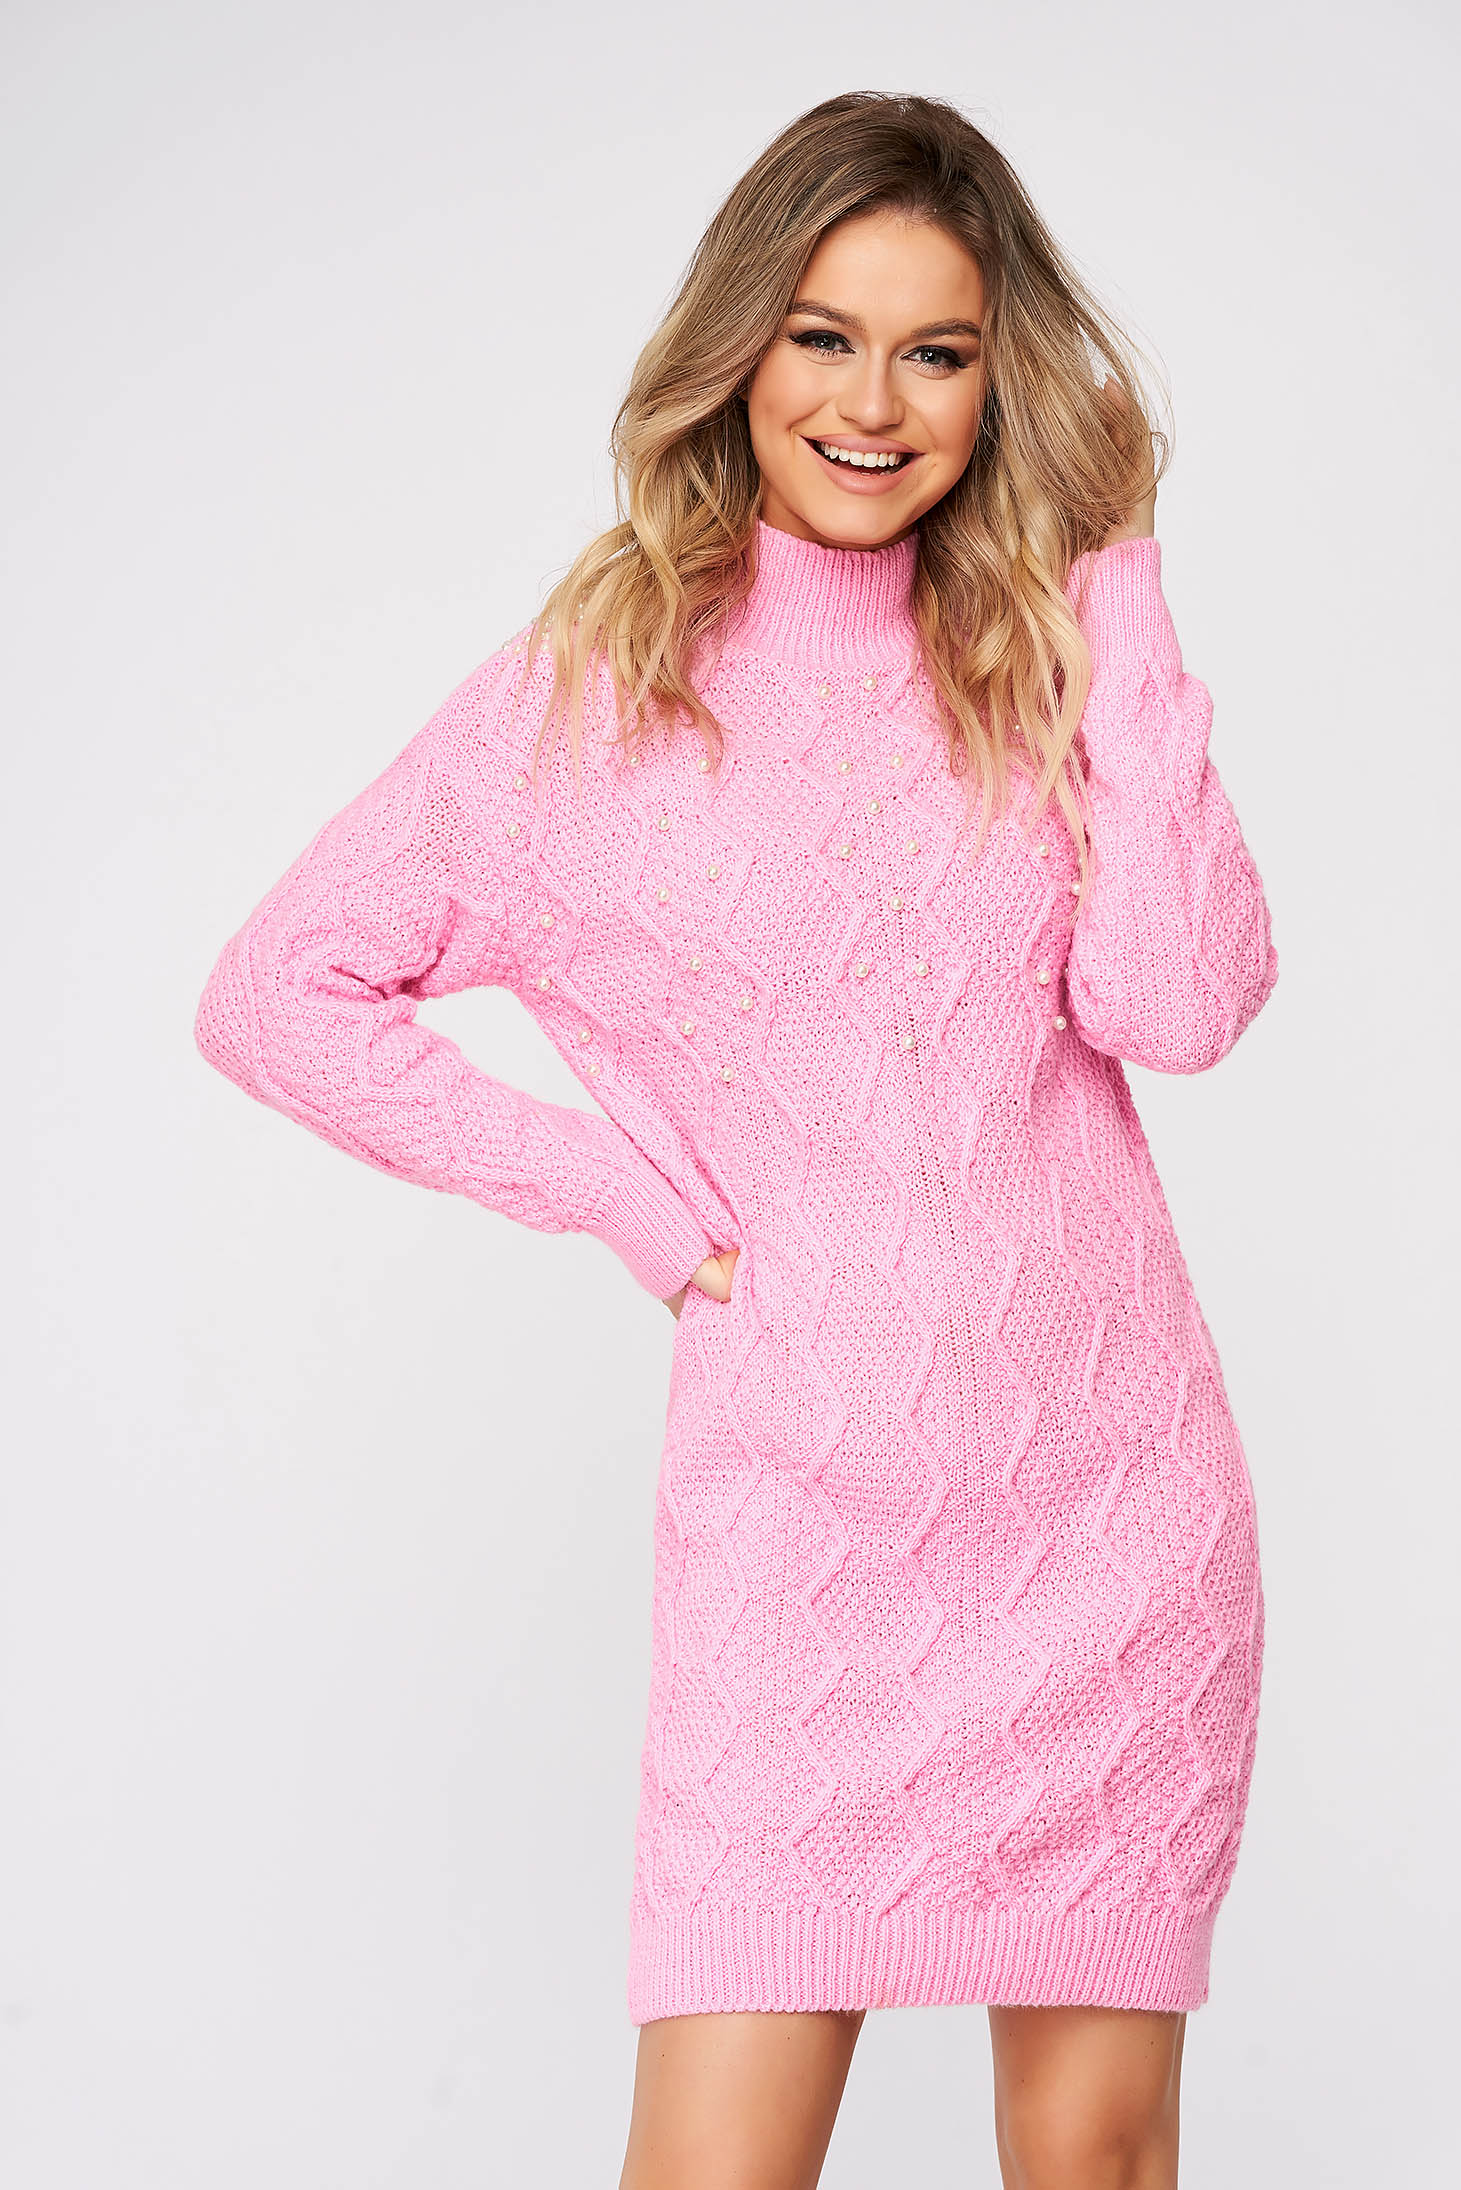 Pink sweater casual knitted fabric with pearls